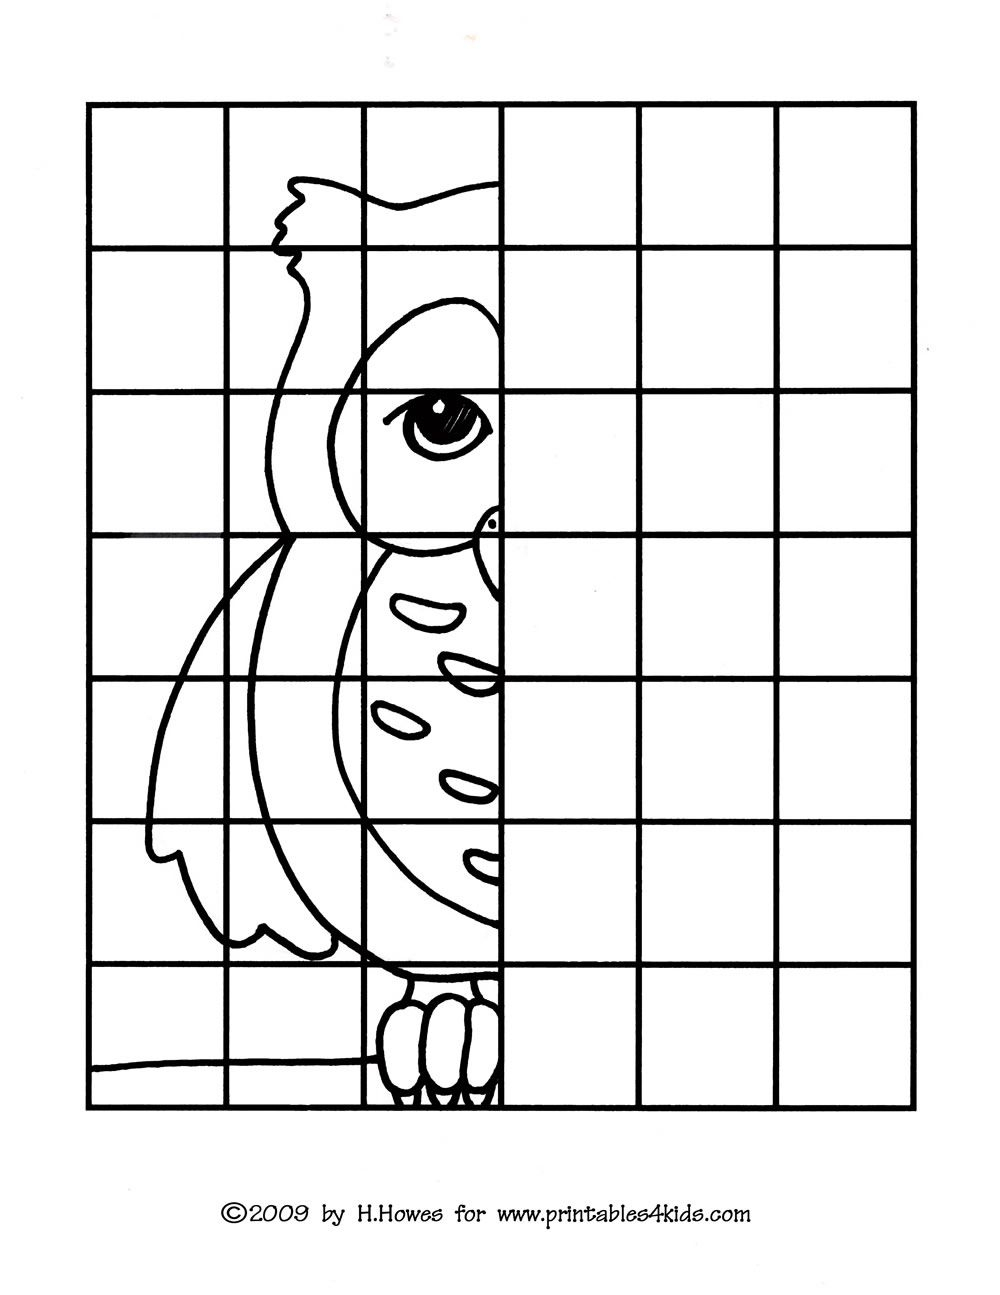 Owl Complete The Picture Drawing : Printables For Kids – Free Word - Printable Drawing Puzzles